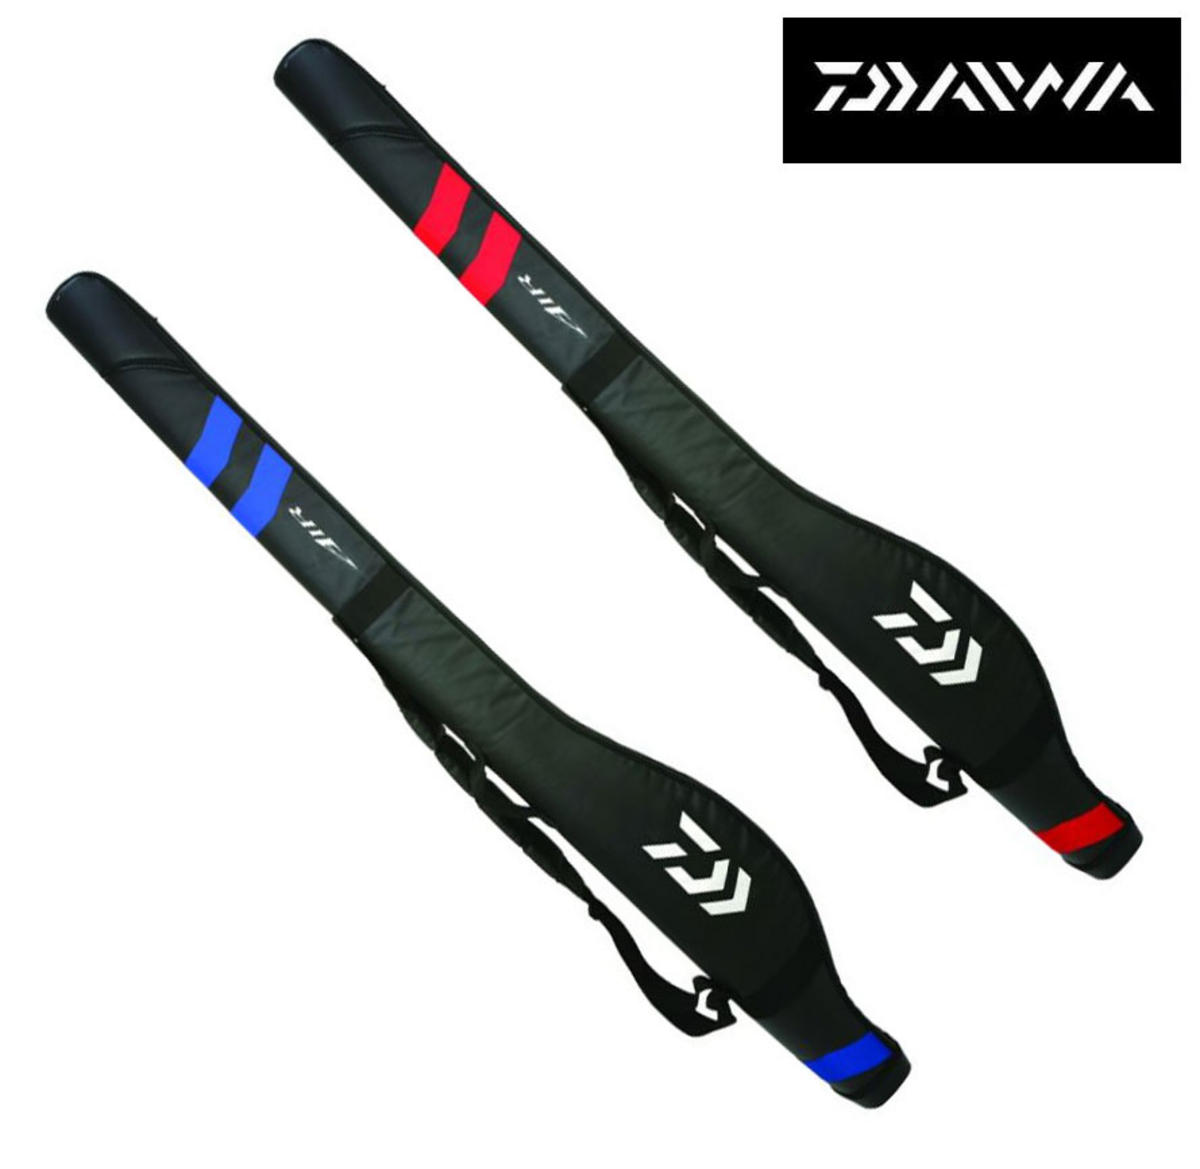 New Daiwa Air 2 Rod Holdall Luggage Red/Black or Blue/Black AIR2RH